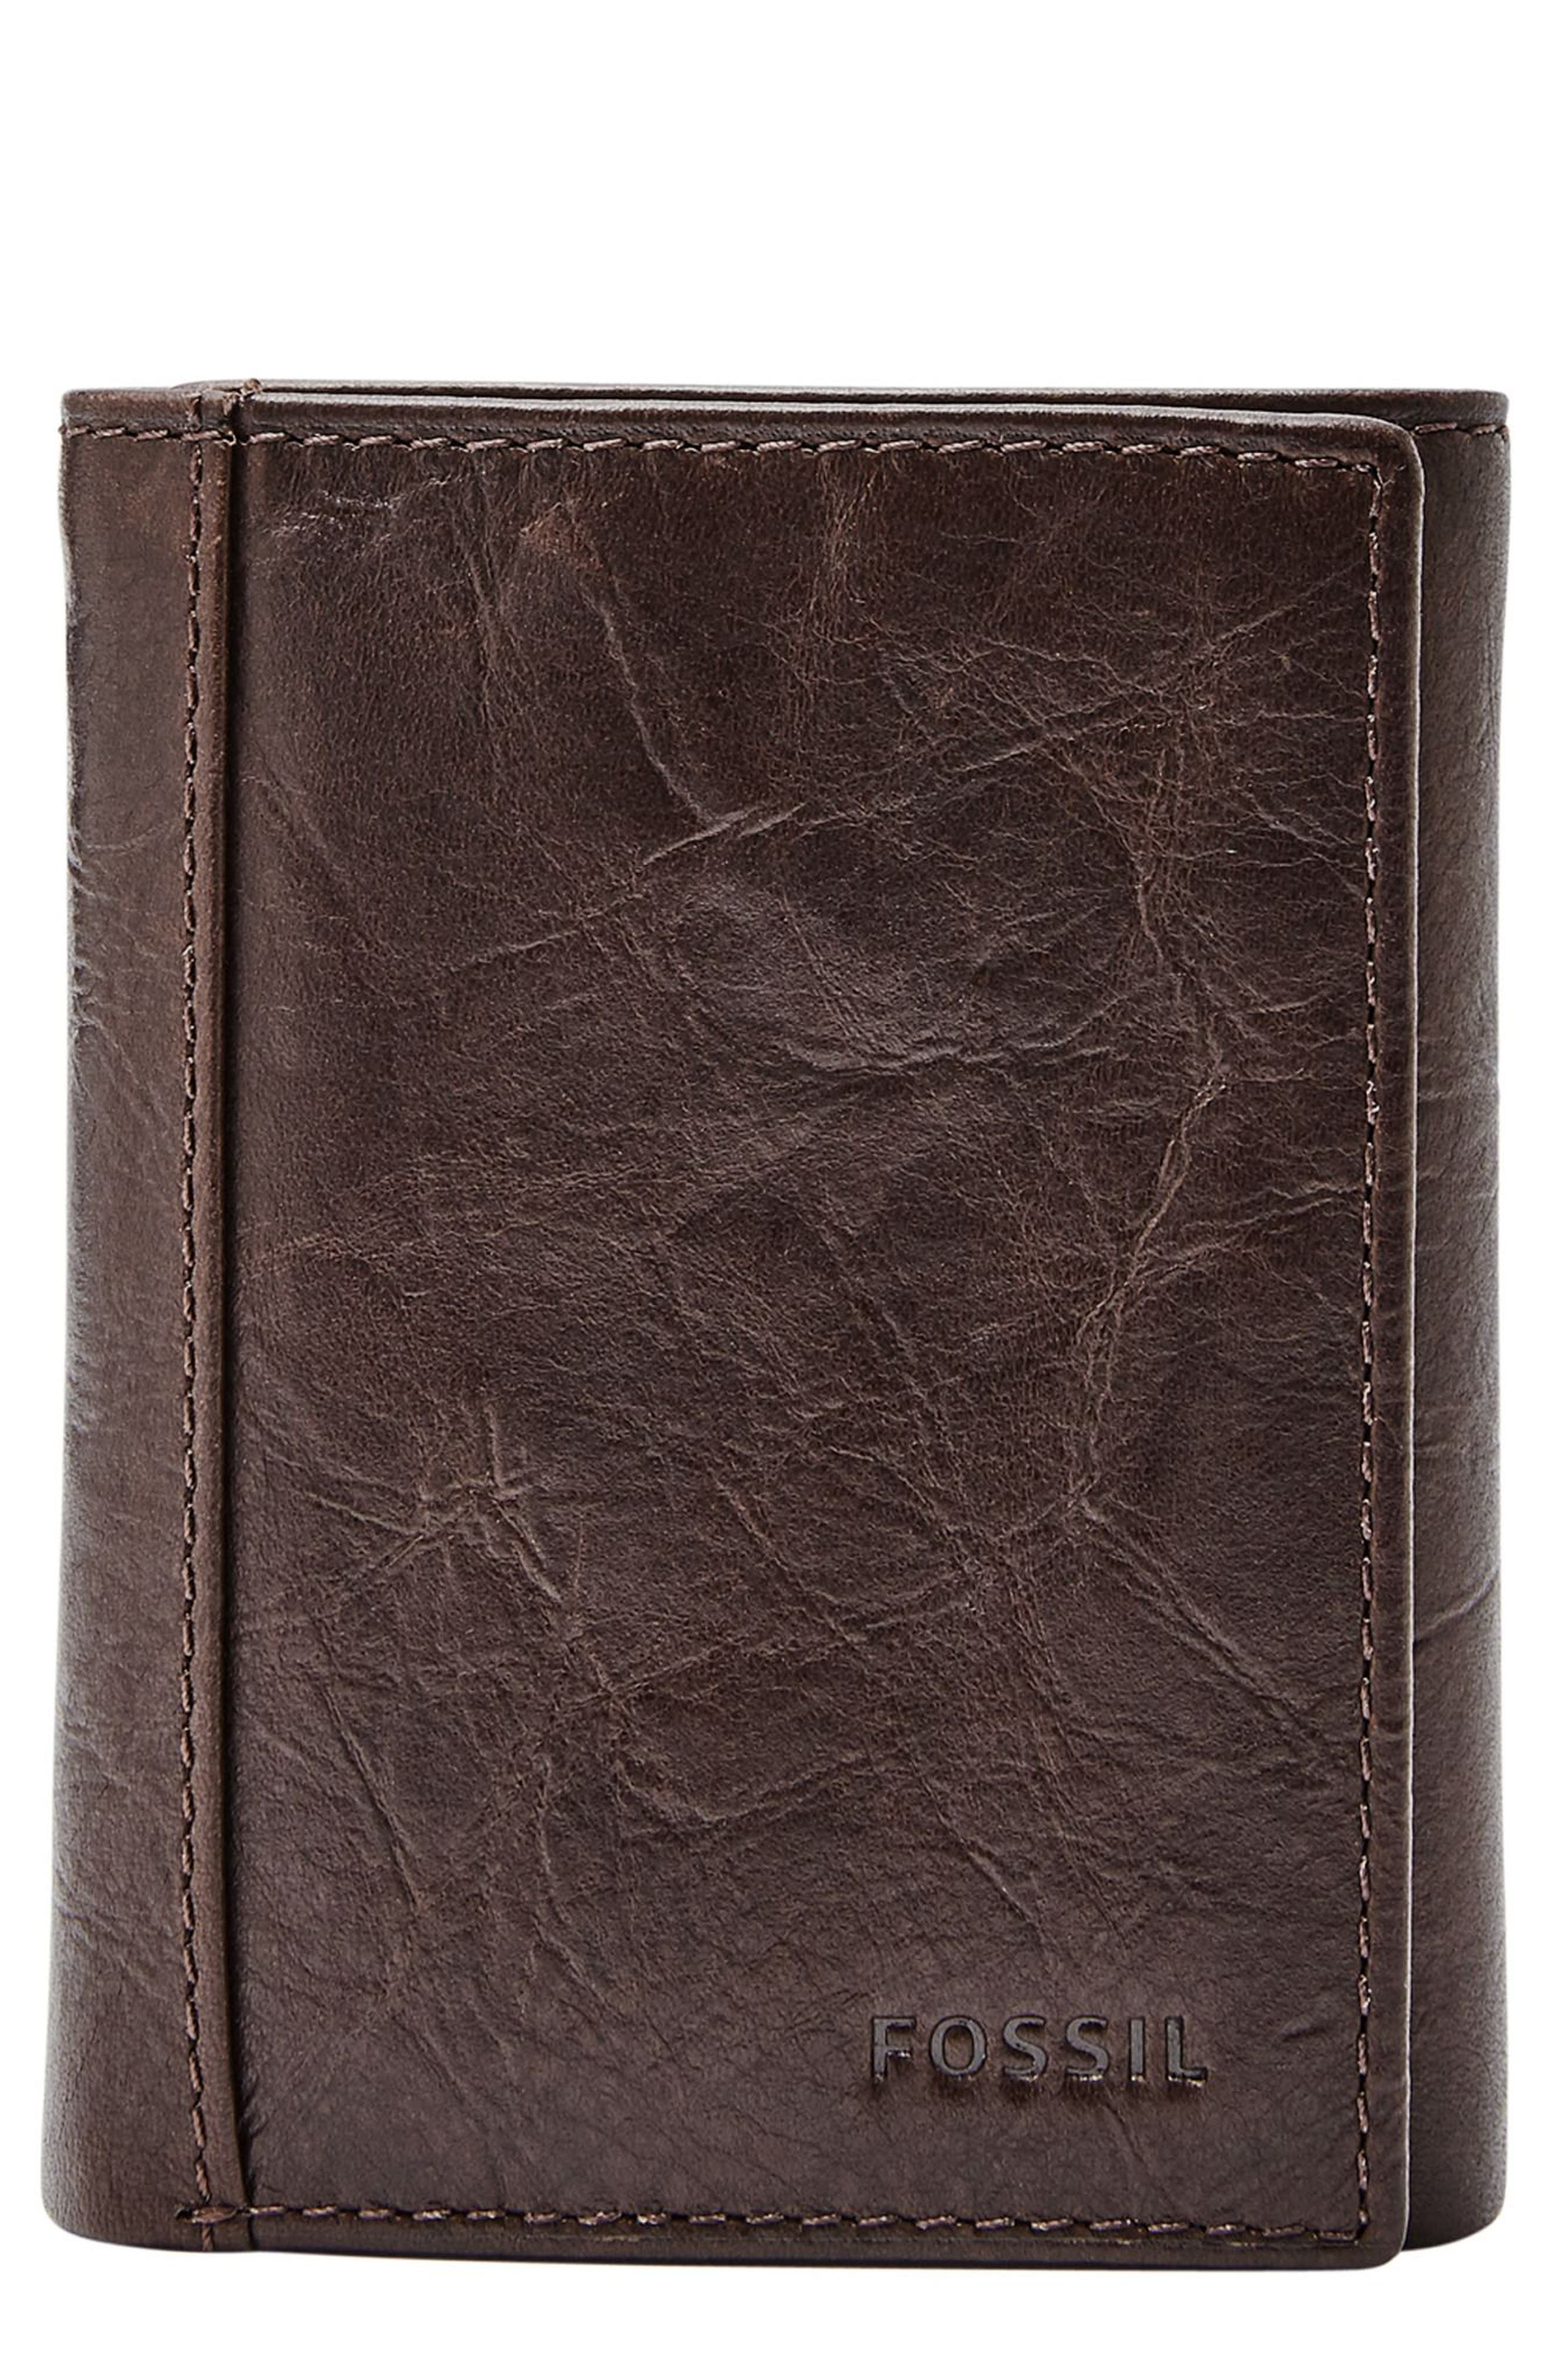 Alternate Image 1 Selected - Fossil Neel Leather Wallet